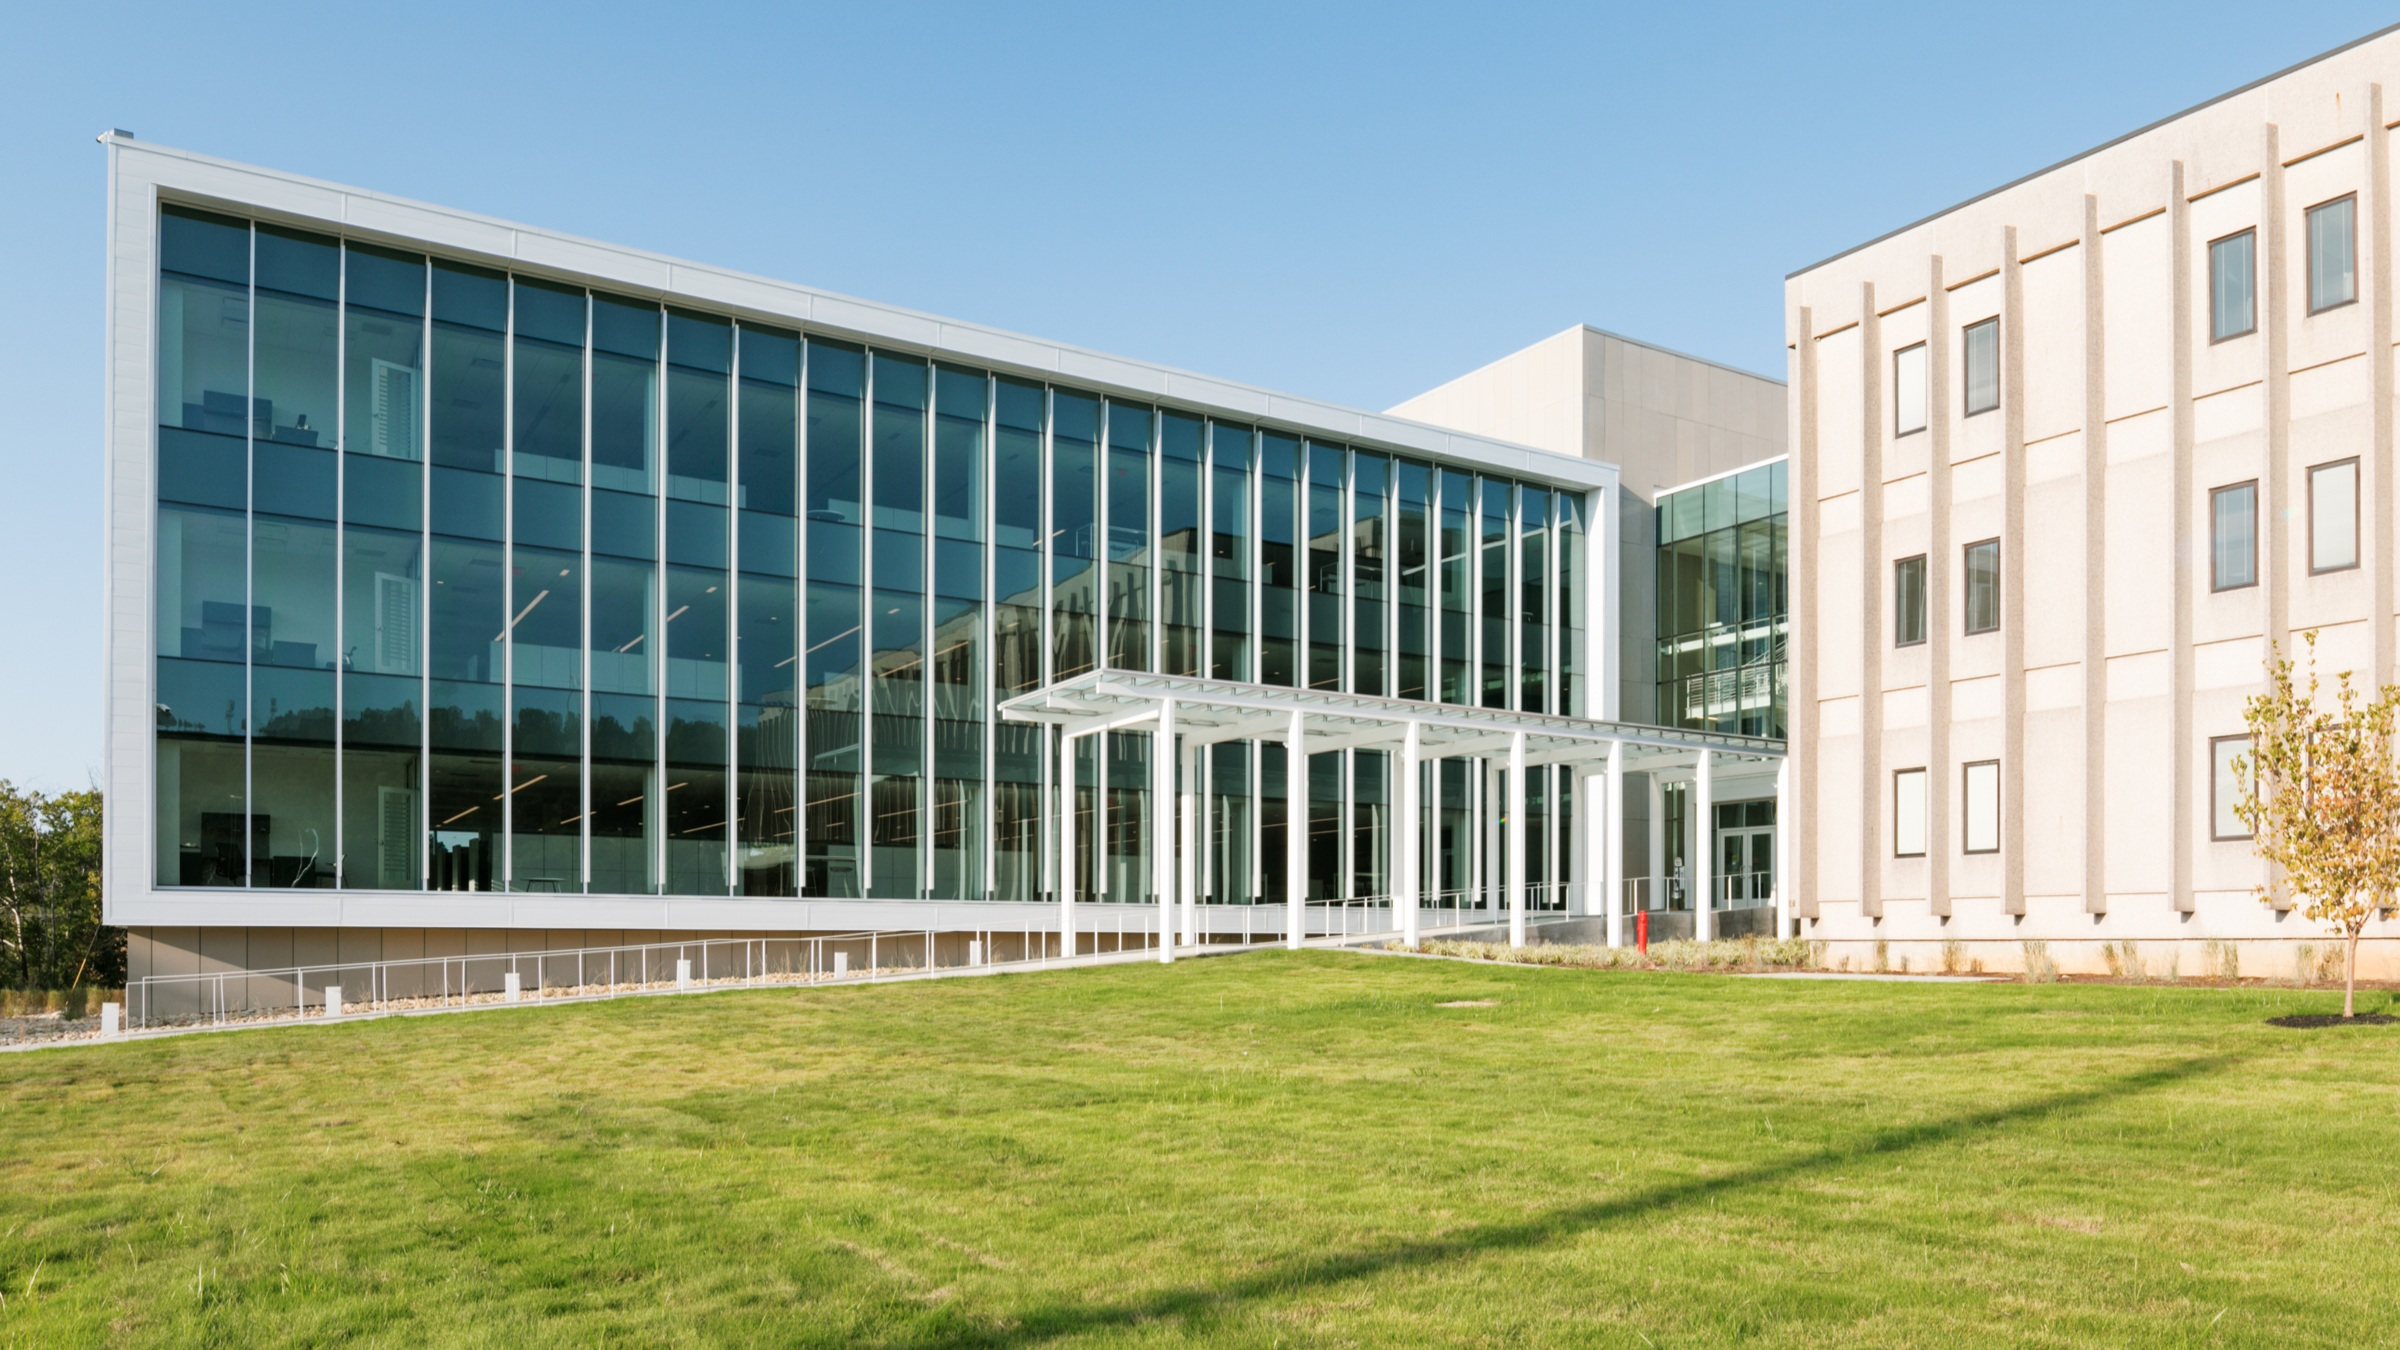 KUB ENGINEERING    A 50,000 SF addition to KUB's existing Engineering and Operations facility.